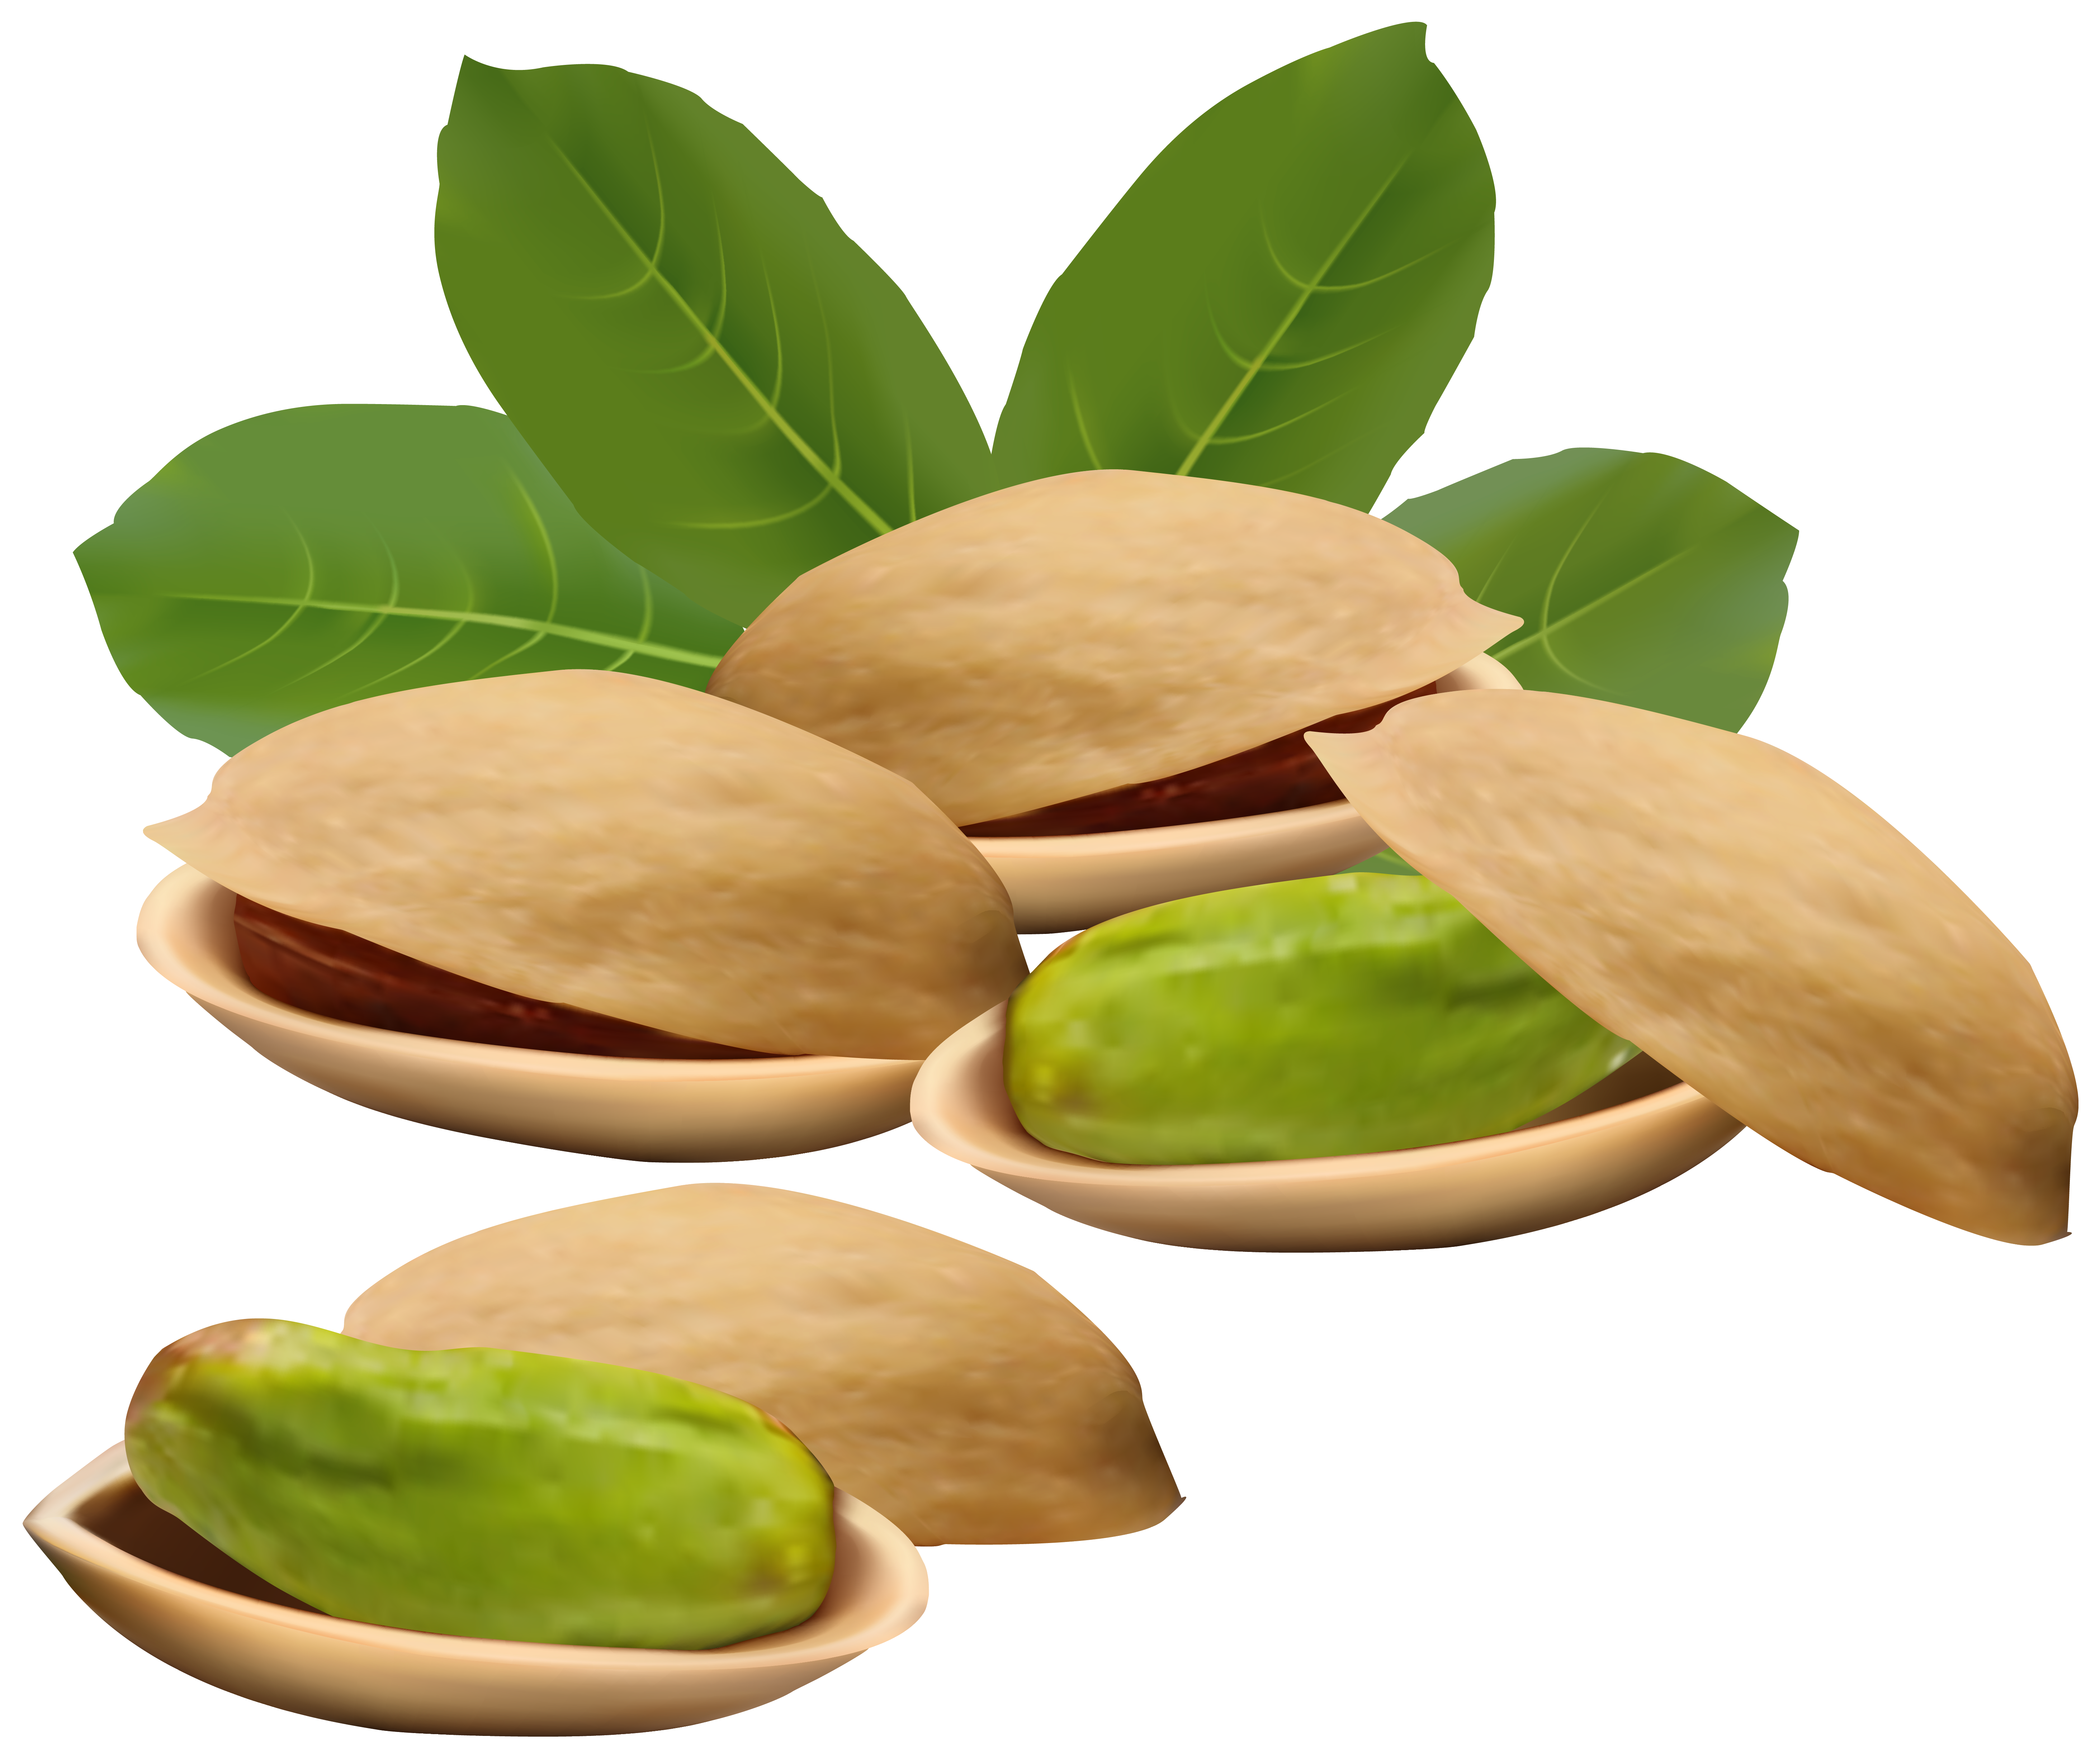 5856x4898 Pistachio Nuts Png Clipart Imageu200b Gallery Yopriceville